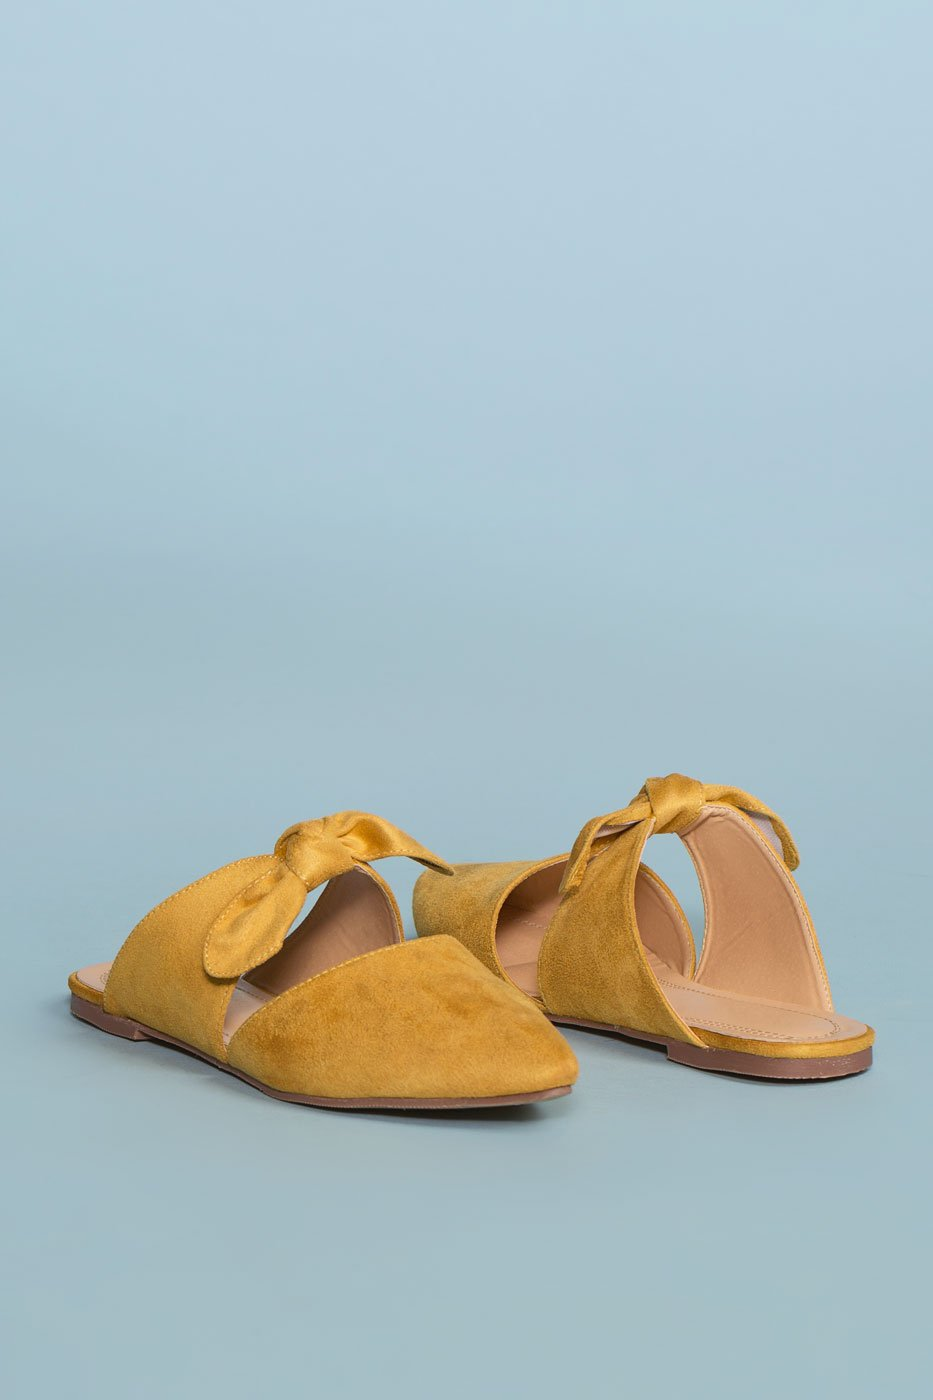 ddf8d04c38ff Shoes - Fiona Bow Pointy Toe Mules - Mustard ...